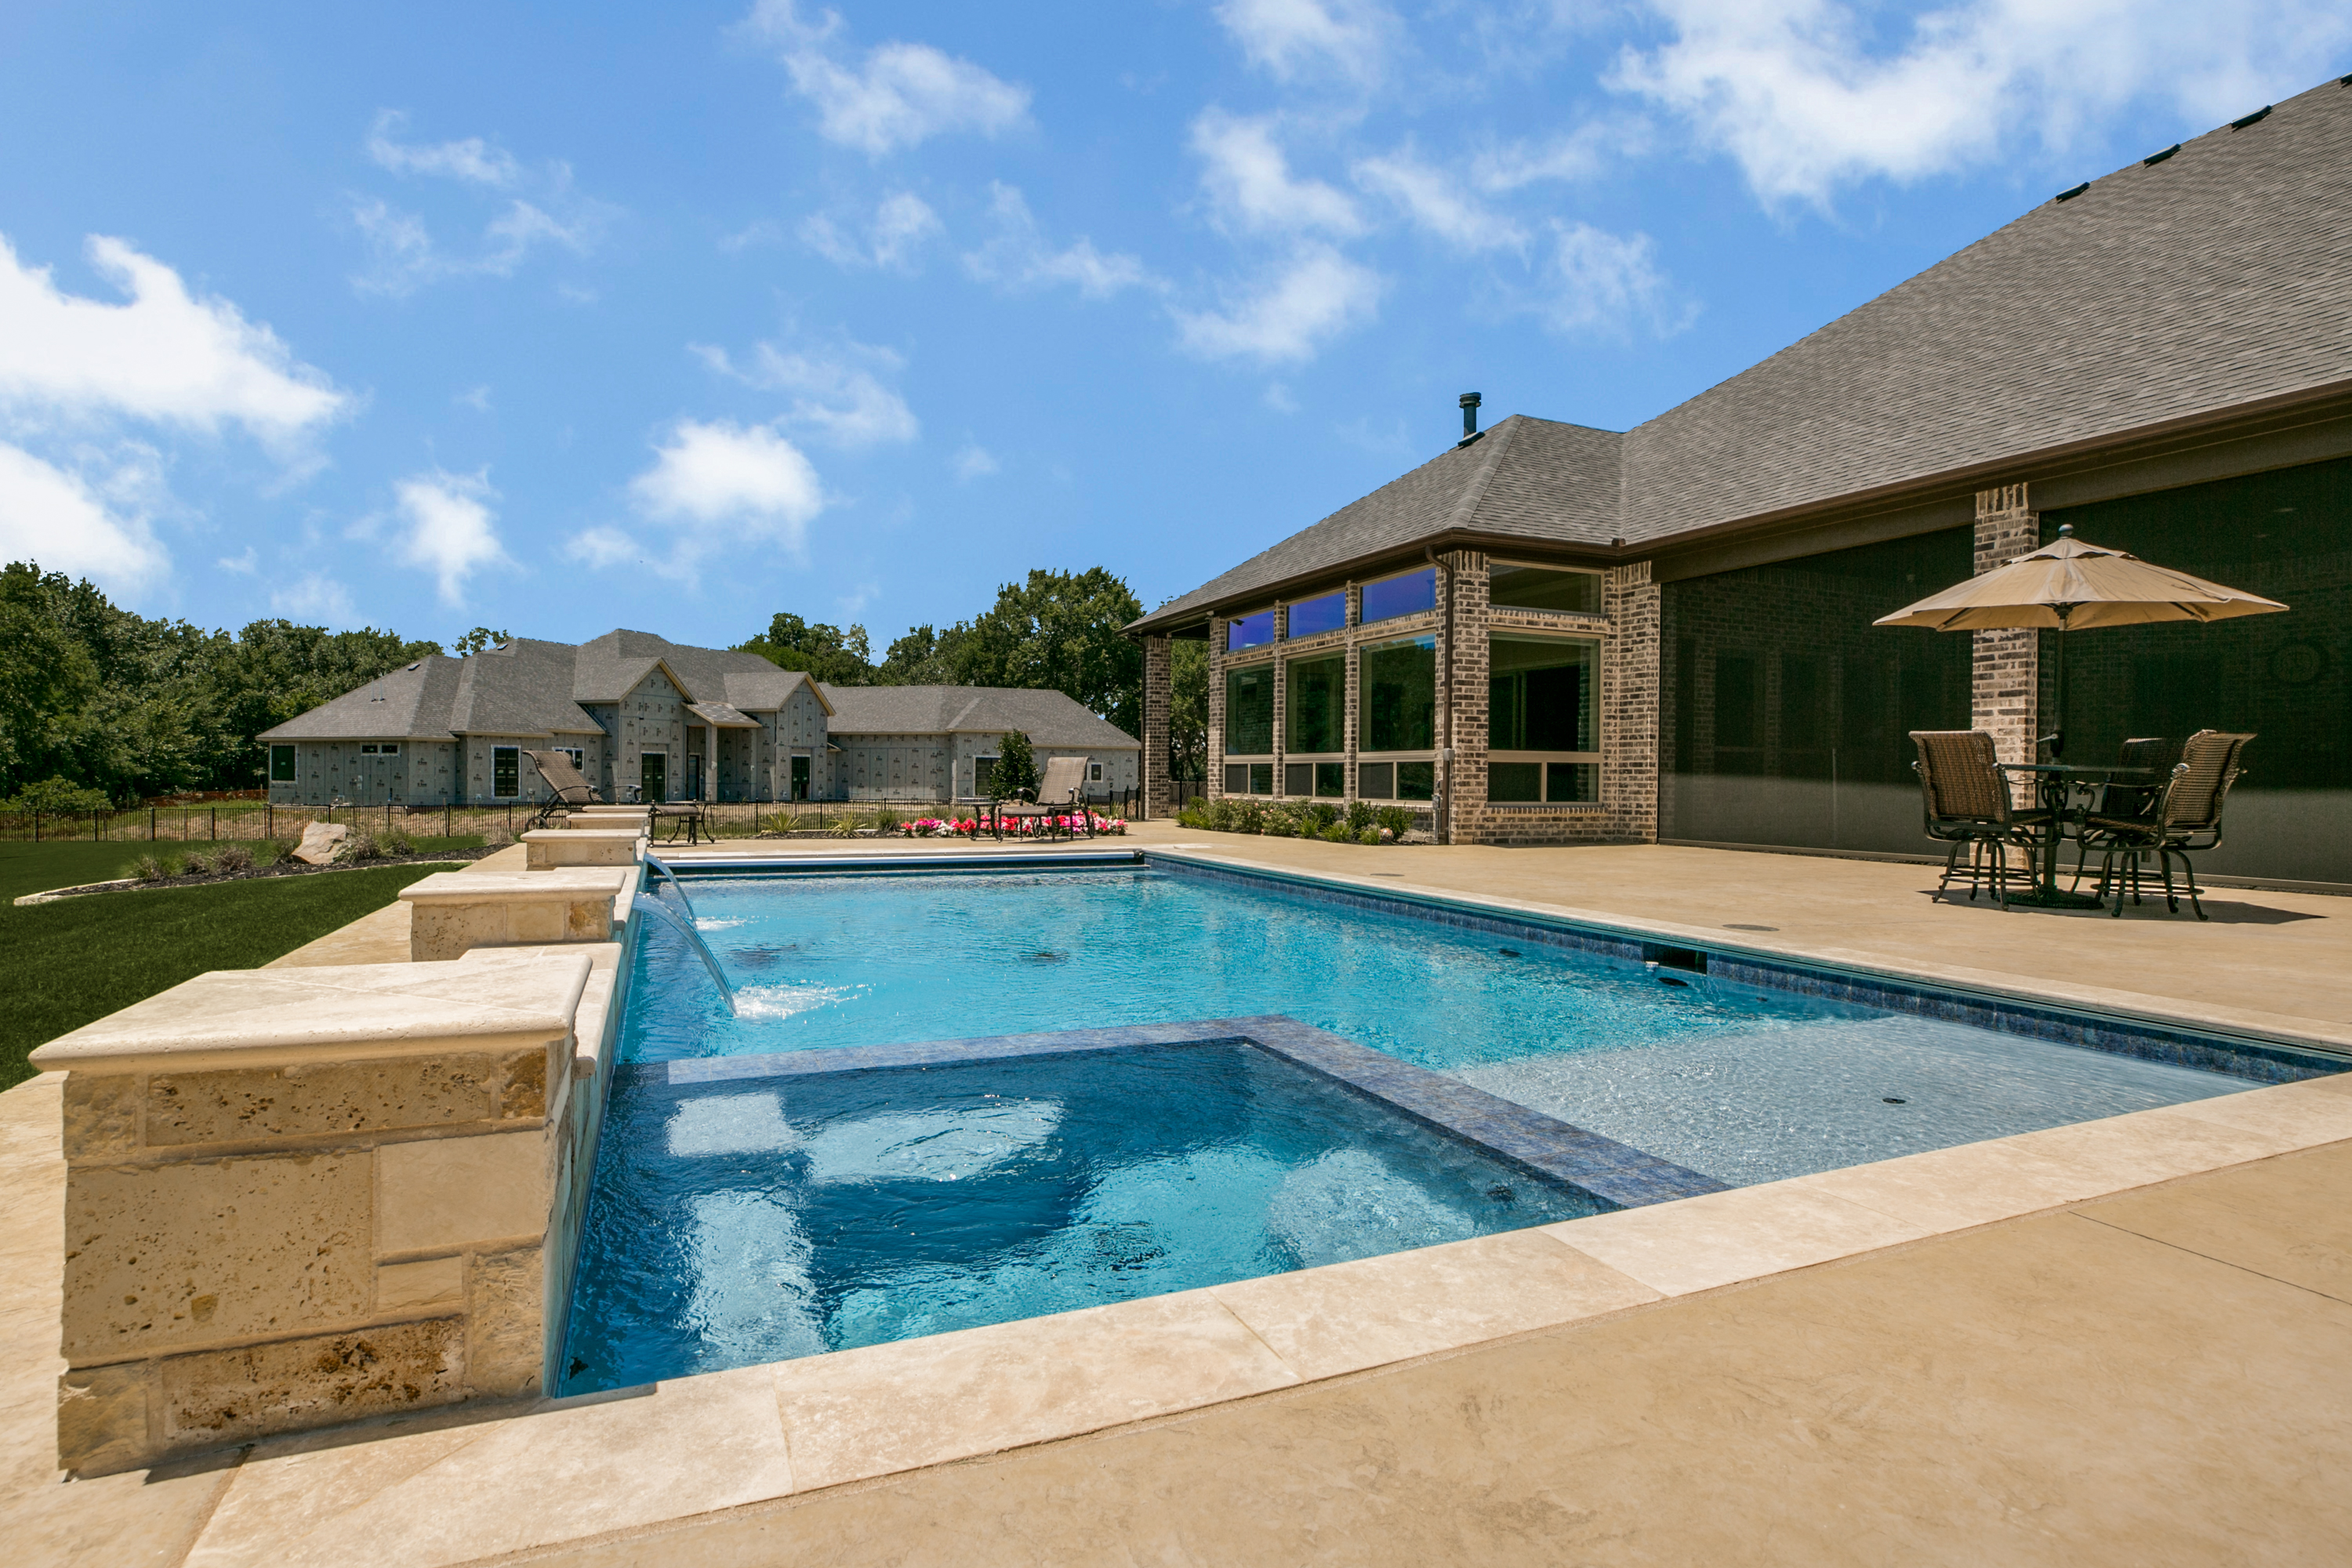 Gold_Medal_Pools-Residential_Pool_Straight_Line_Style-Prosper-TX-11